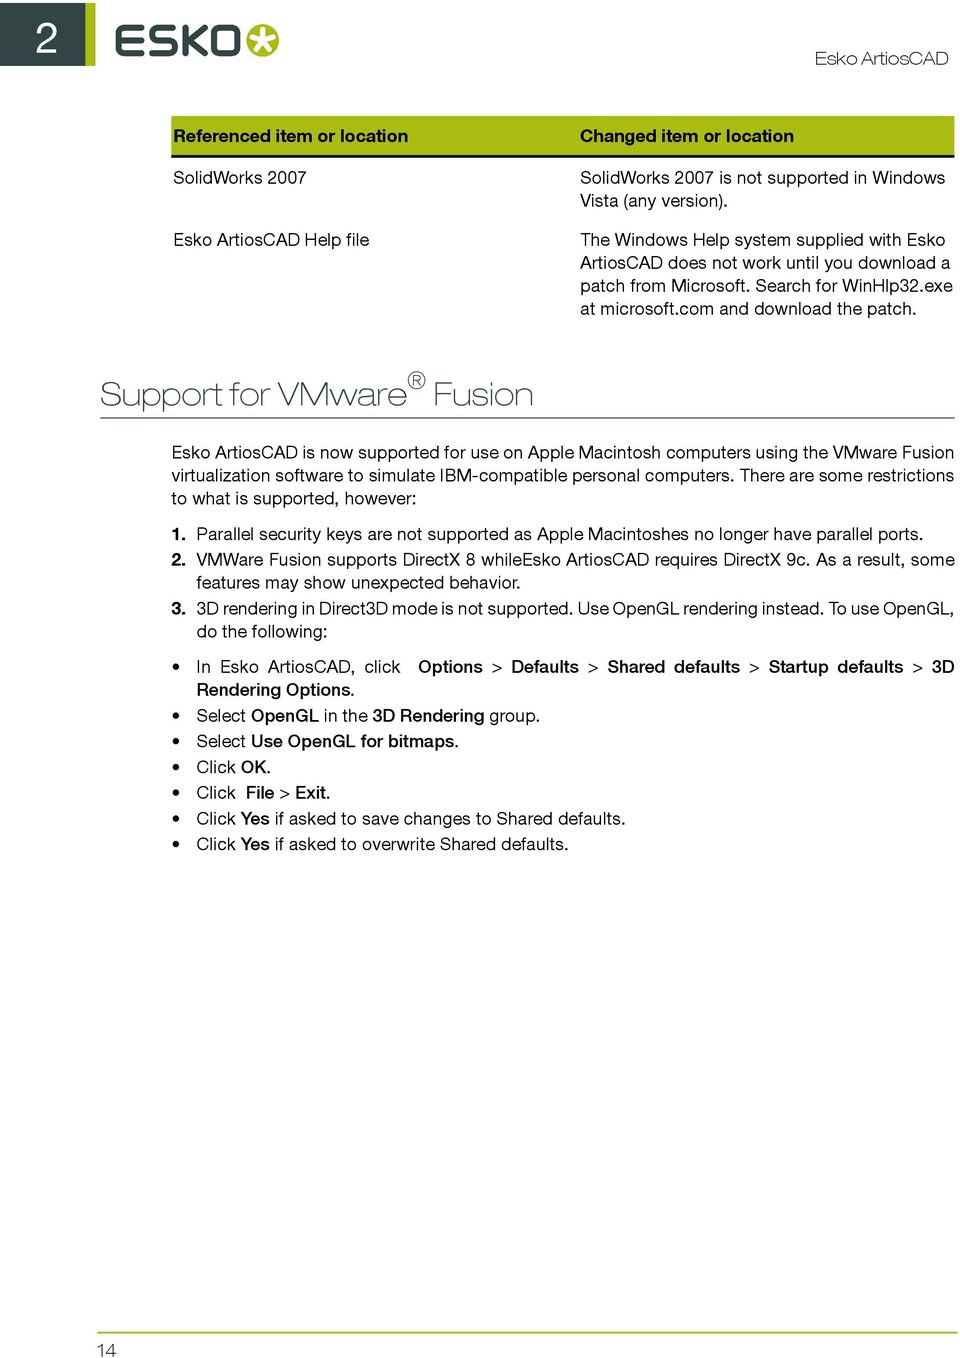 Support for VMware Fusion is now supported for use on Apple Macintosh computers using the VMware Fusion virtualization software to simulate IBM-compatible personal computers.